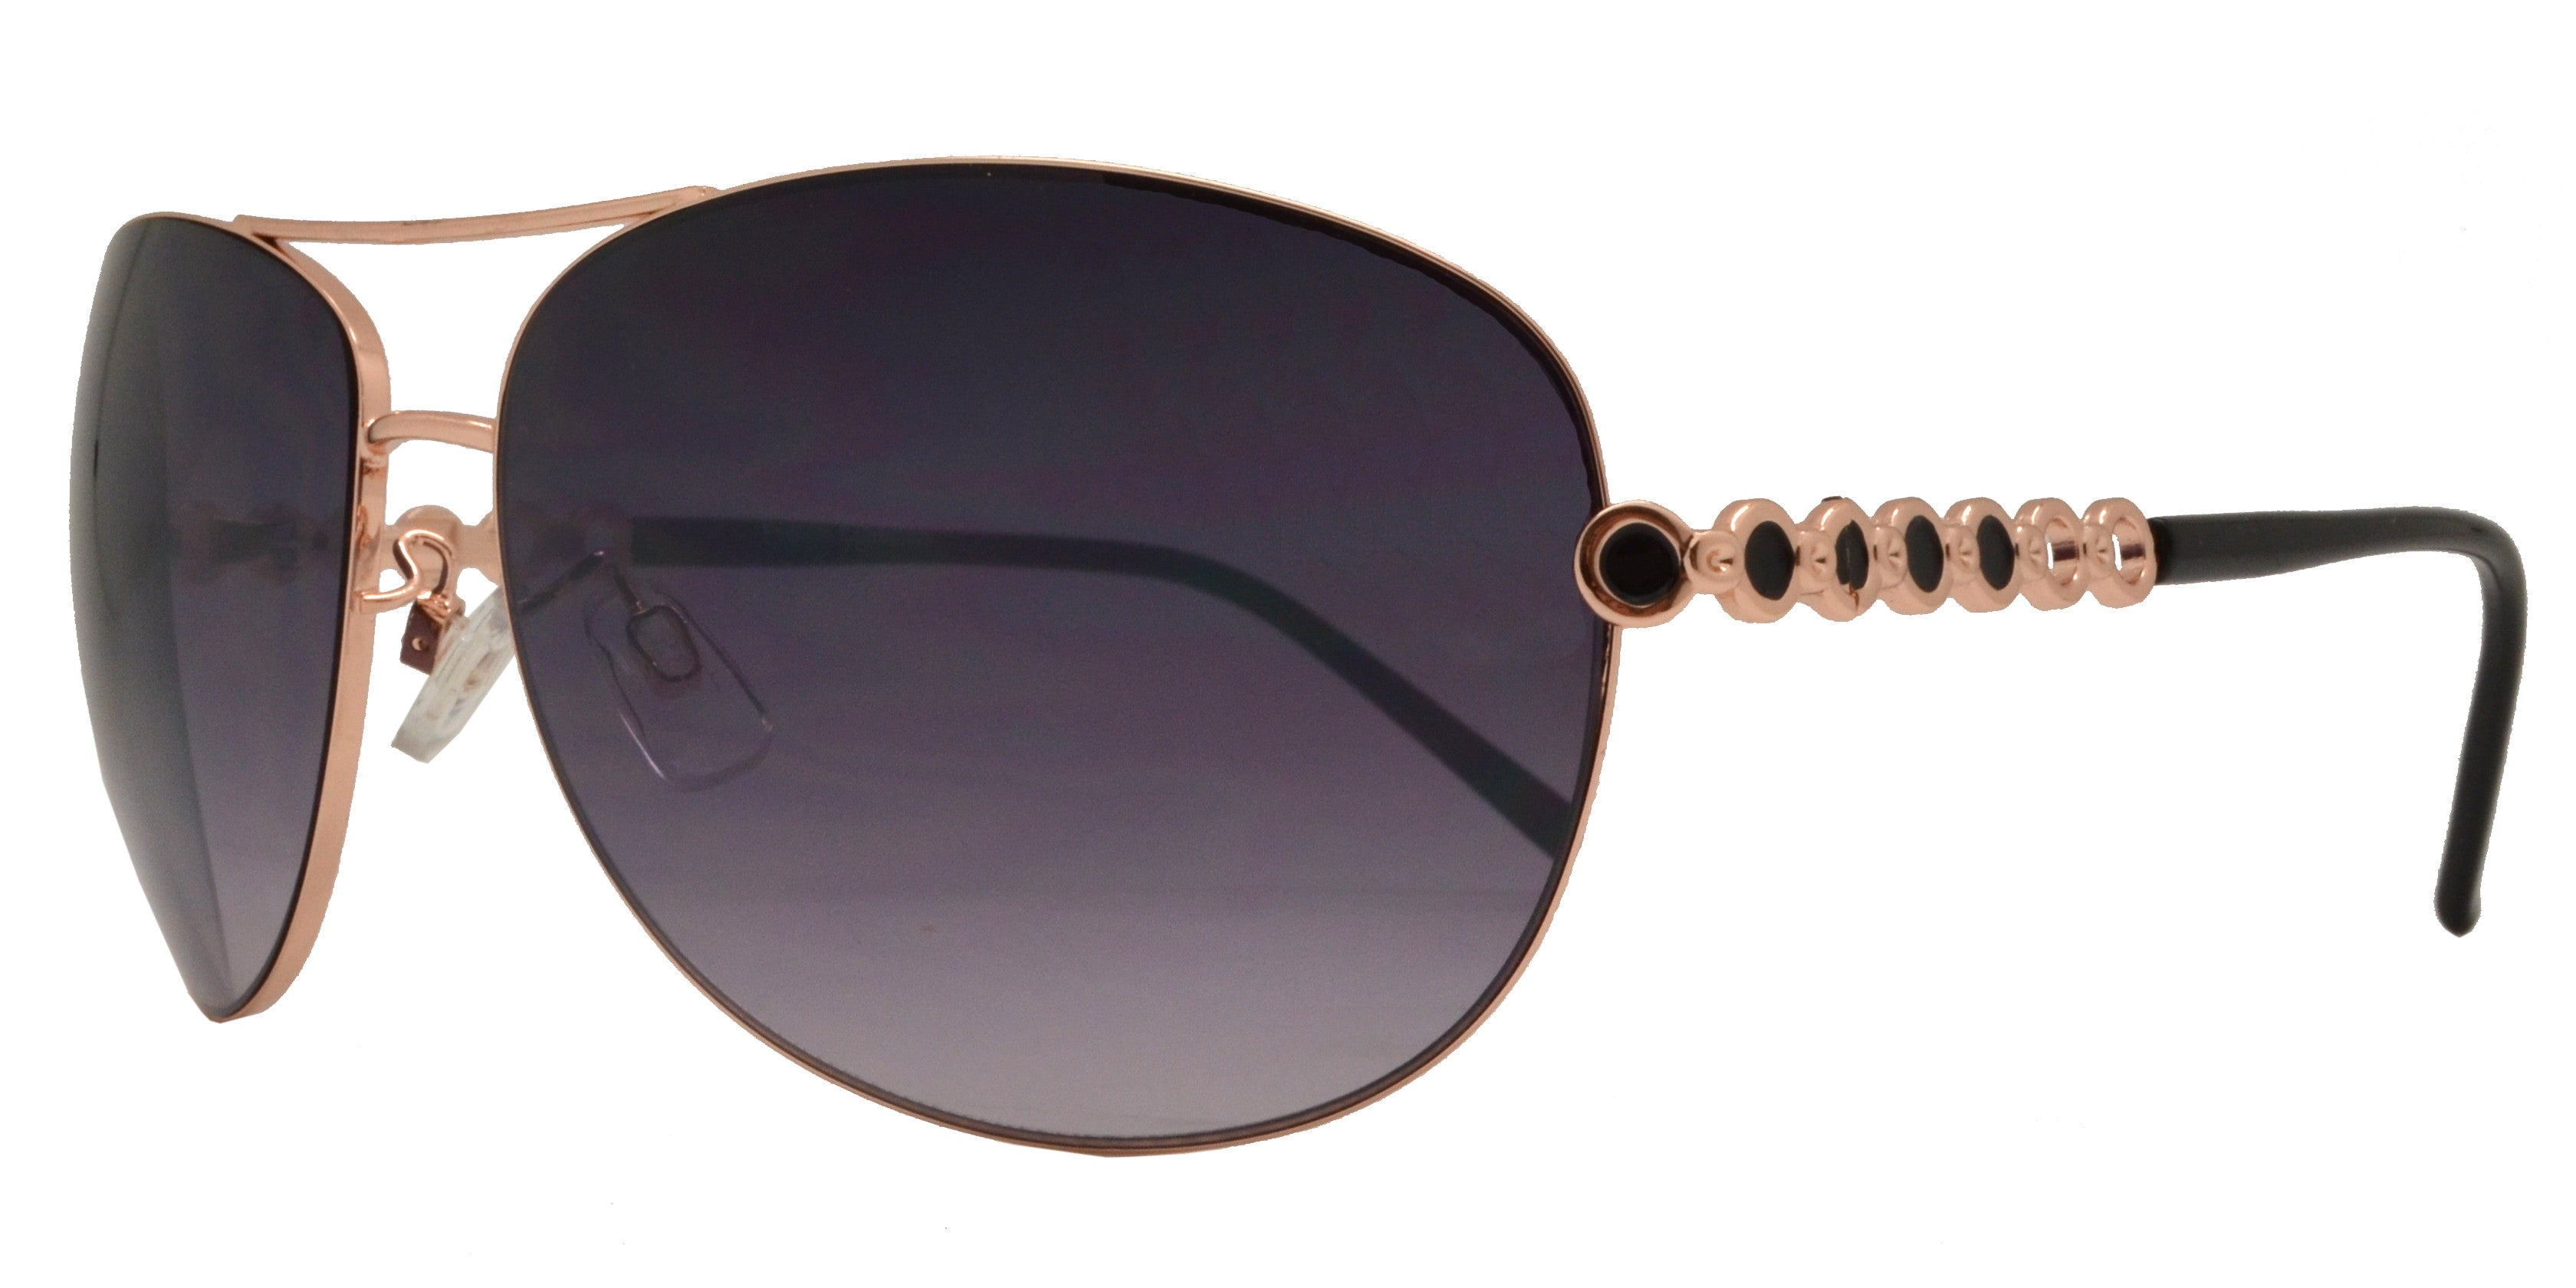 Dynasol Eyewear - Wholesale Sunglasses - FC 6014 - Aviator Women Metal Sunglasses - sunglasses